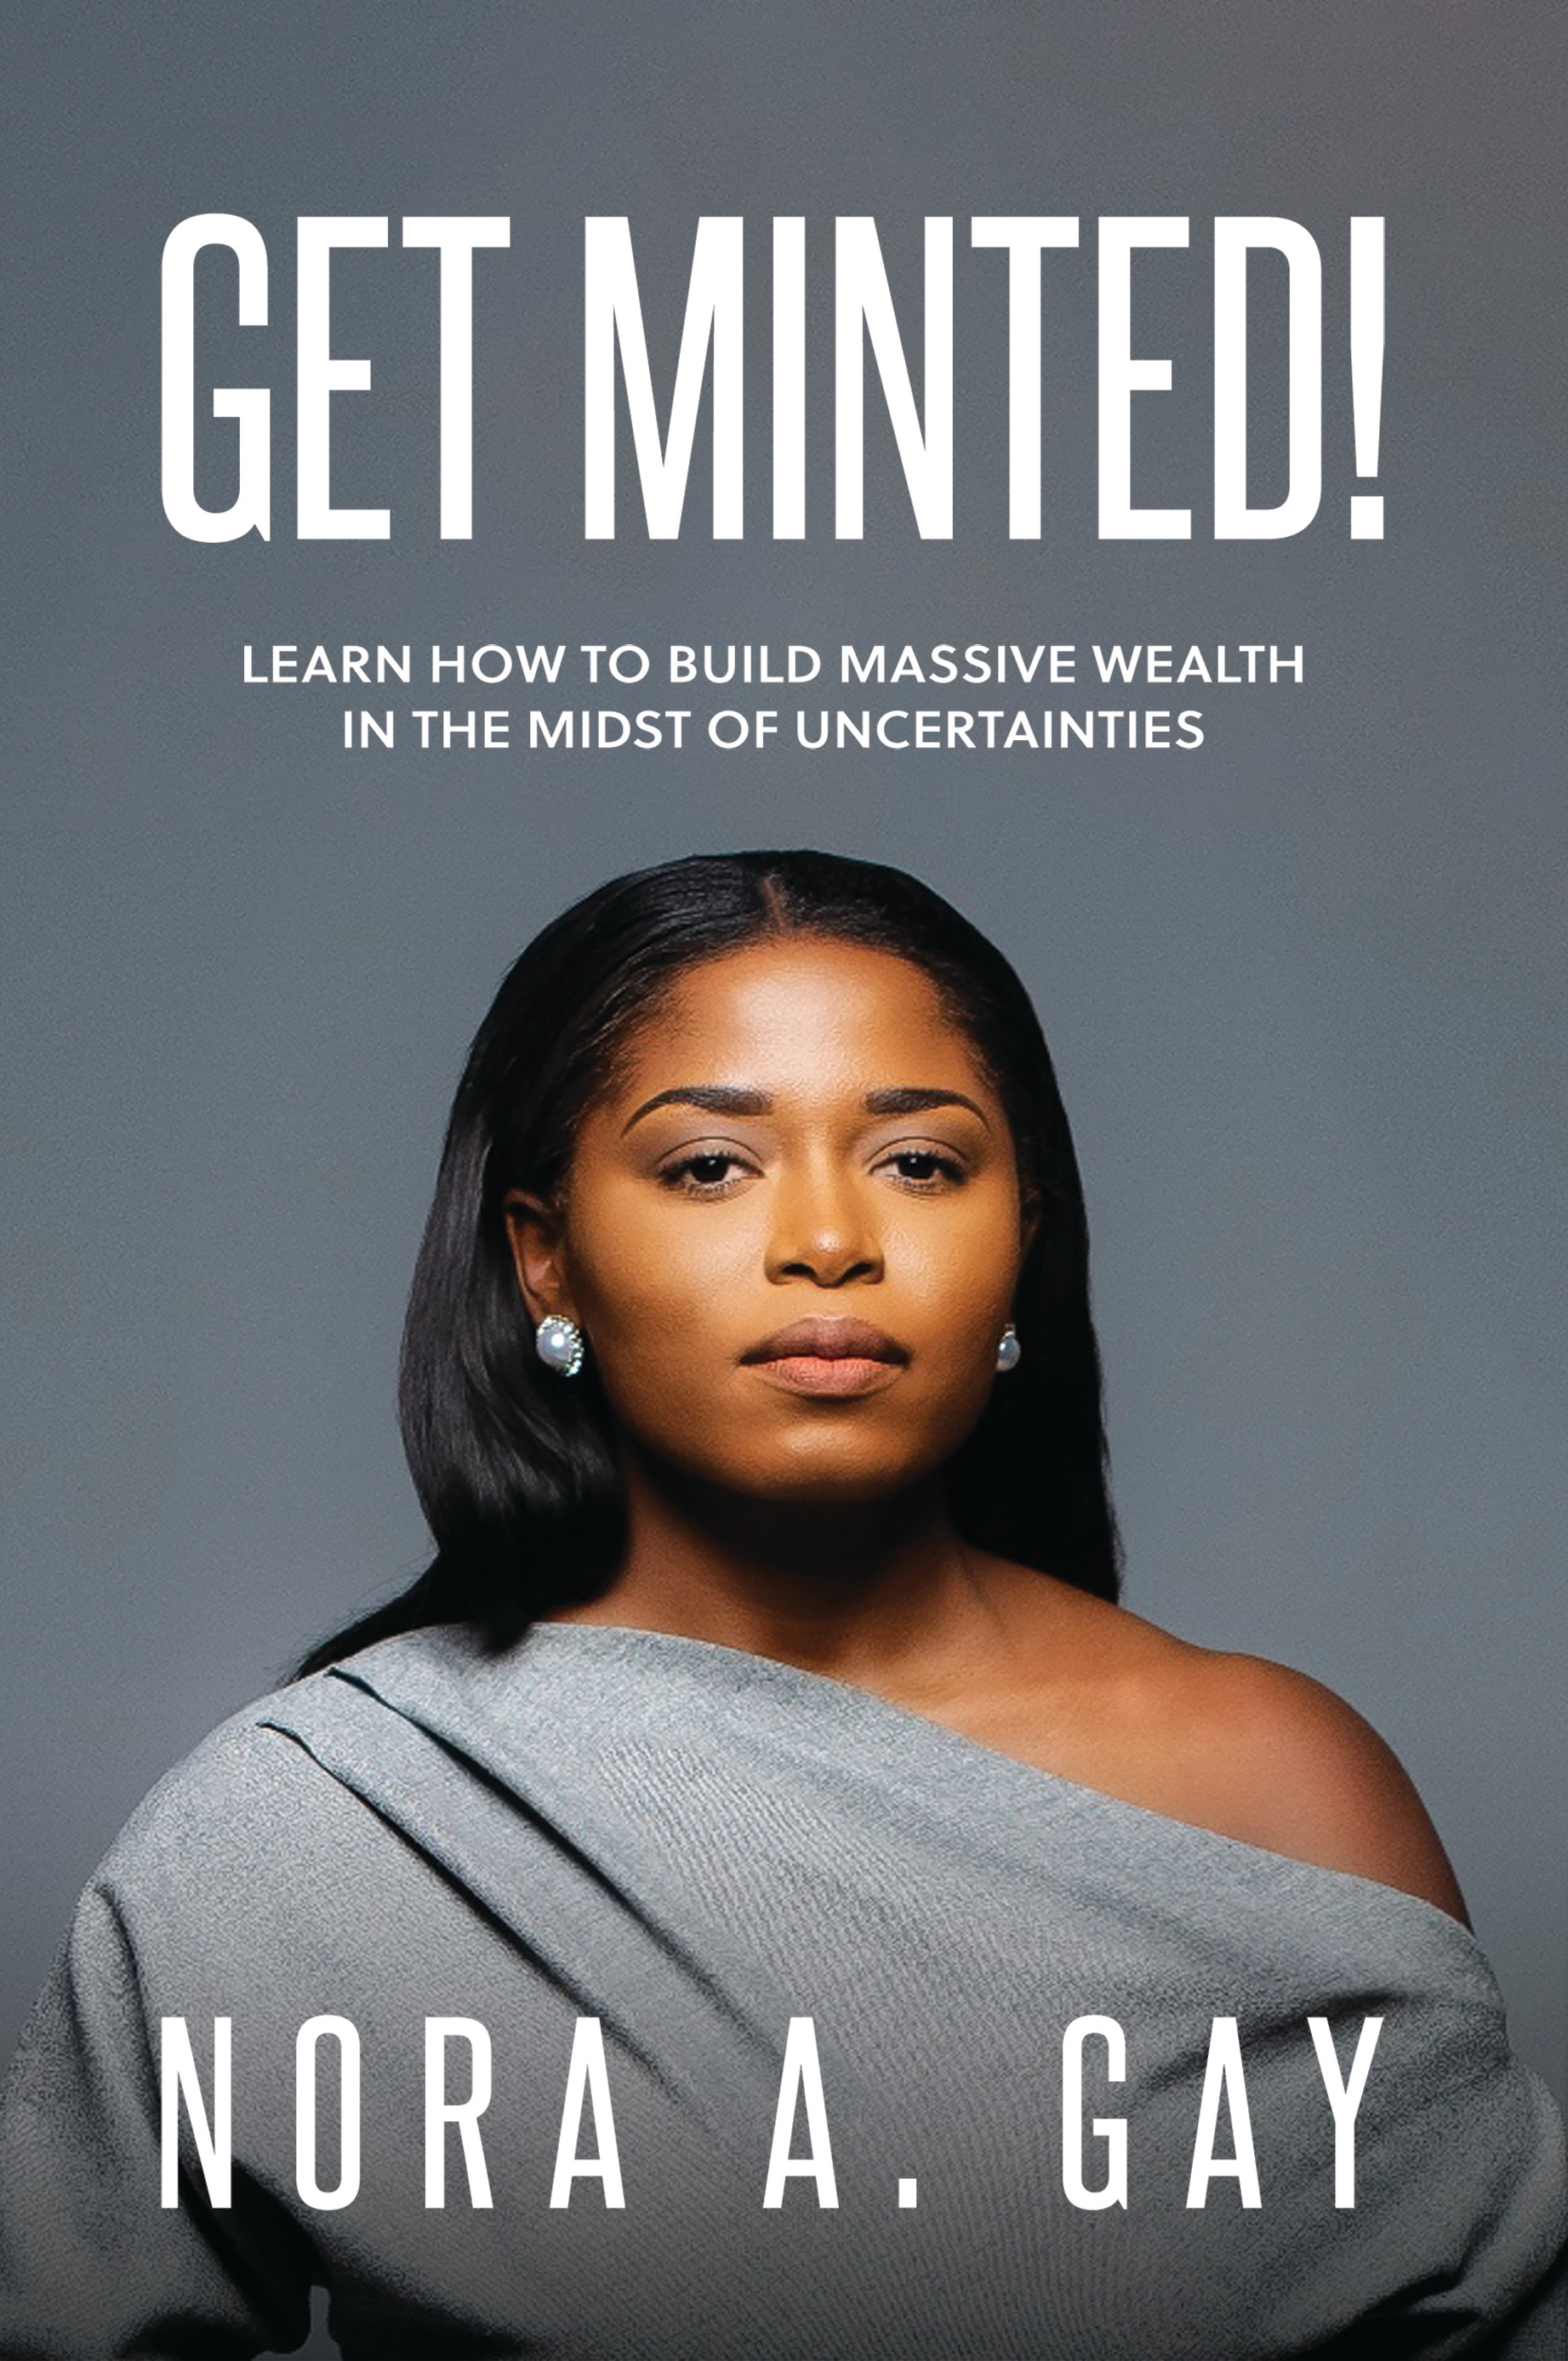 Get Minted!: Learn To Build Massive Wealth In The Midst of Uncertainties